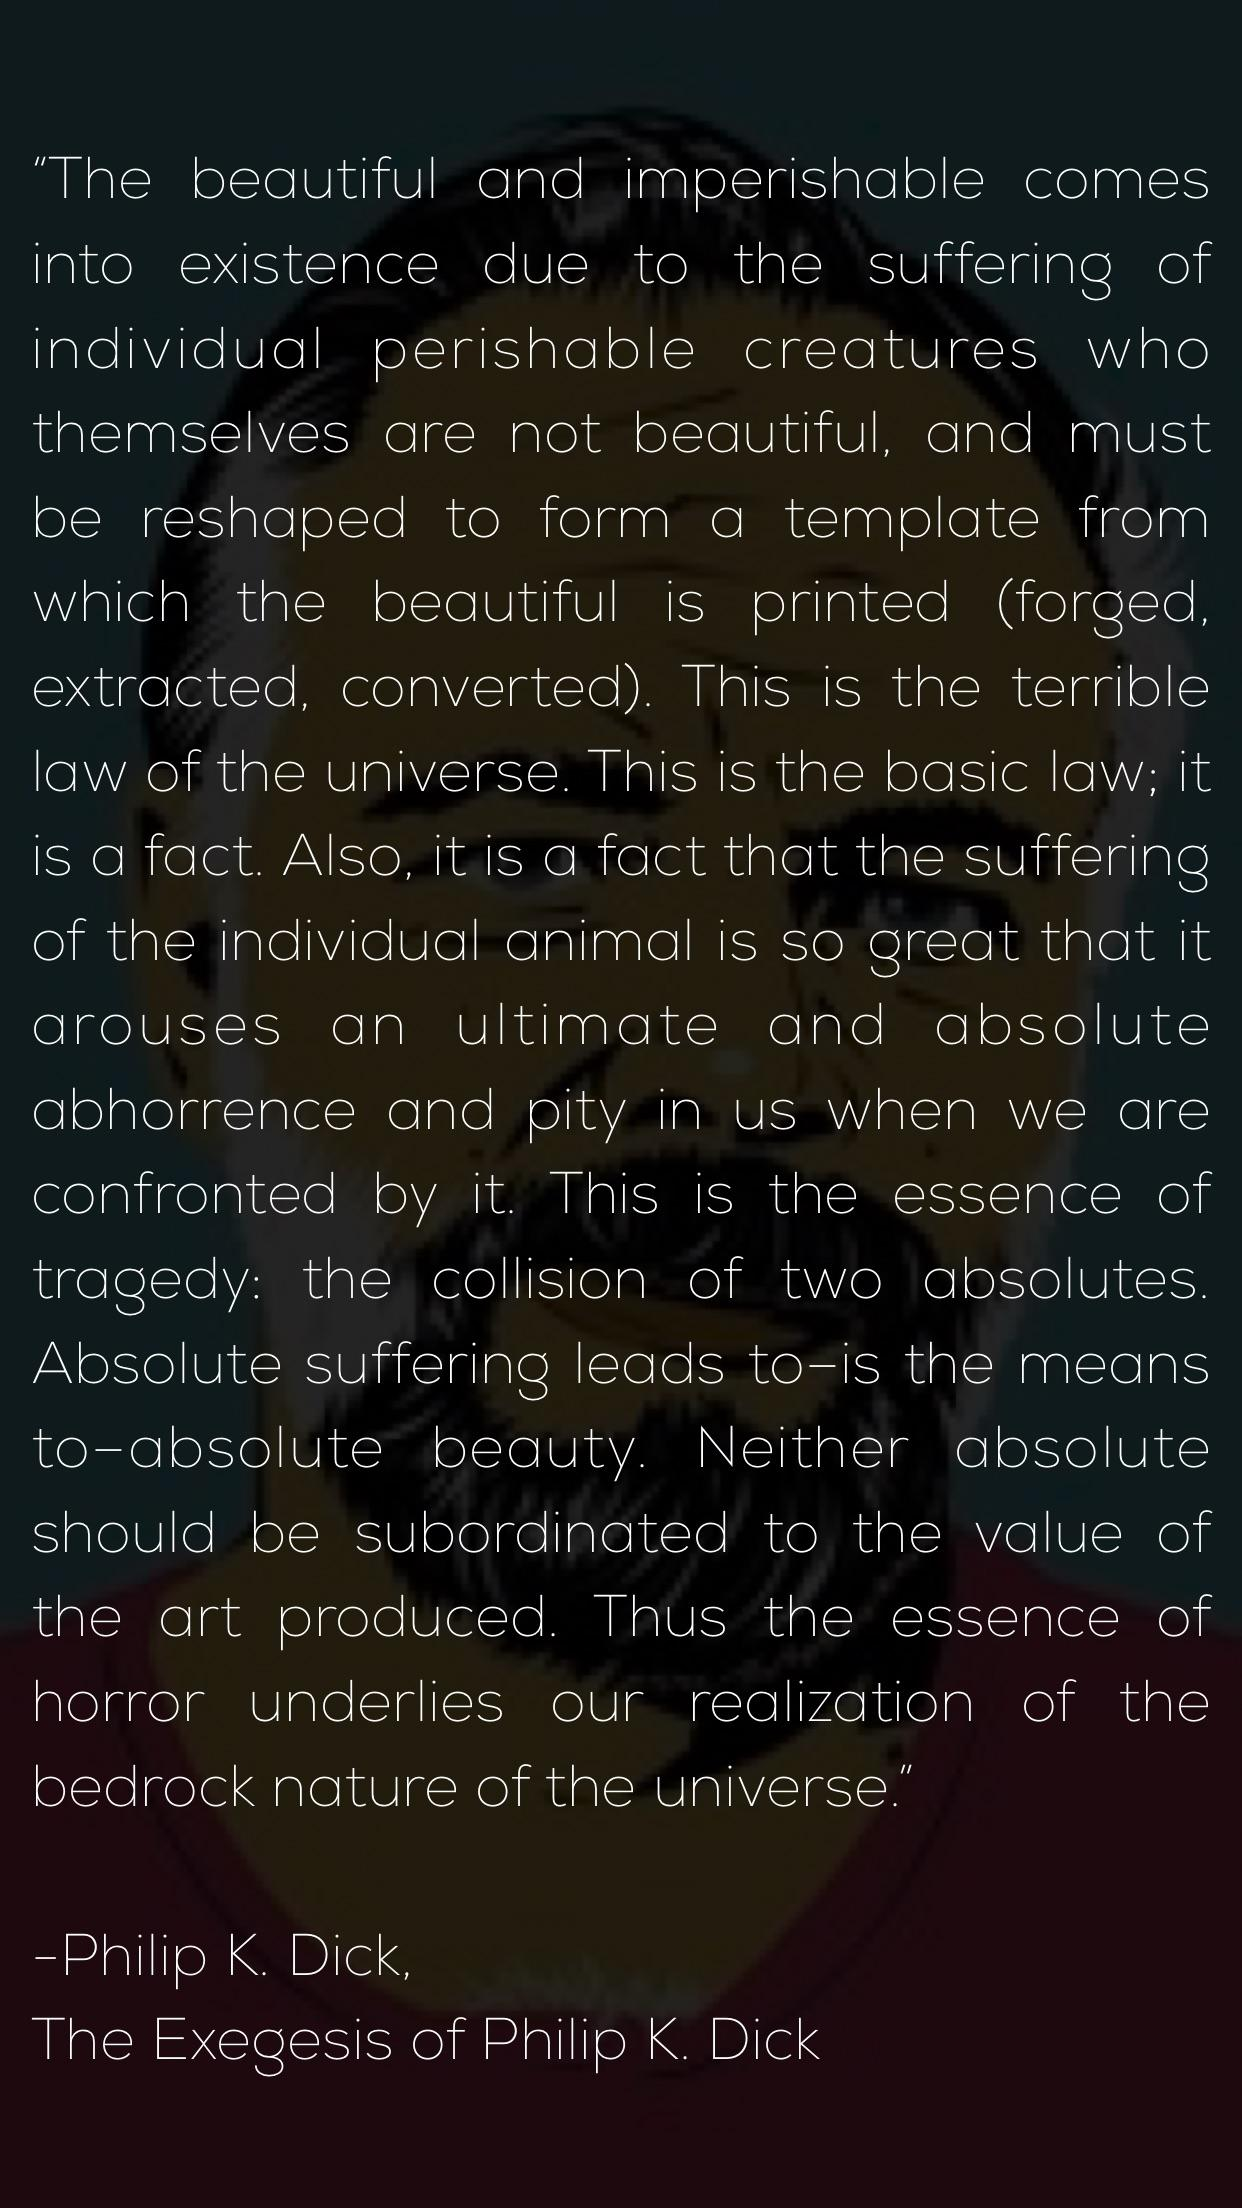 """…Thus the essence of horror underlies our realization of the bedrock nature of the universe."" – Philip K. Dick [1200×1980]"